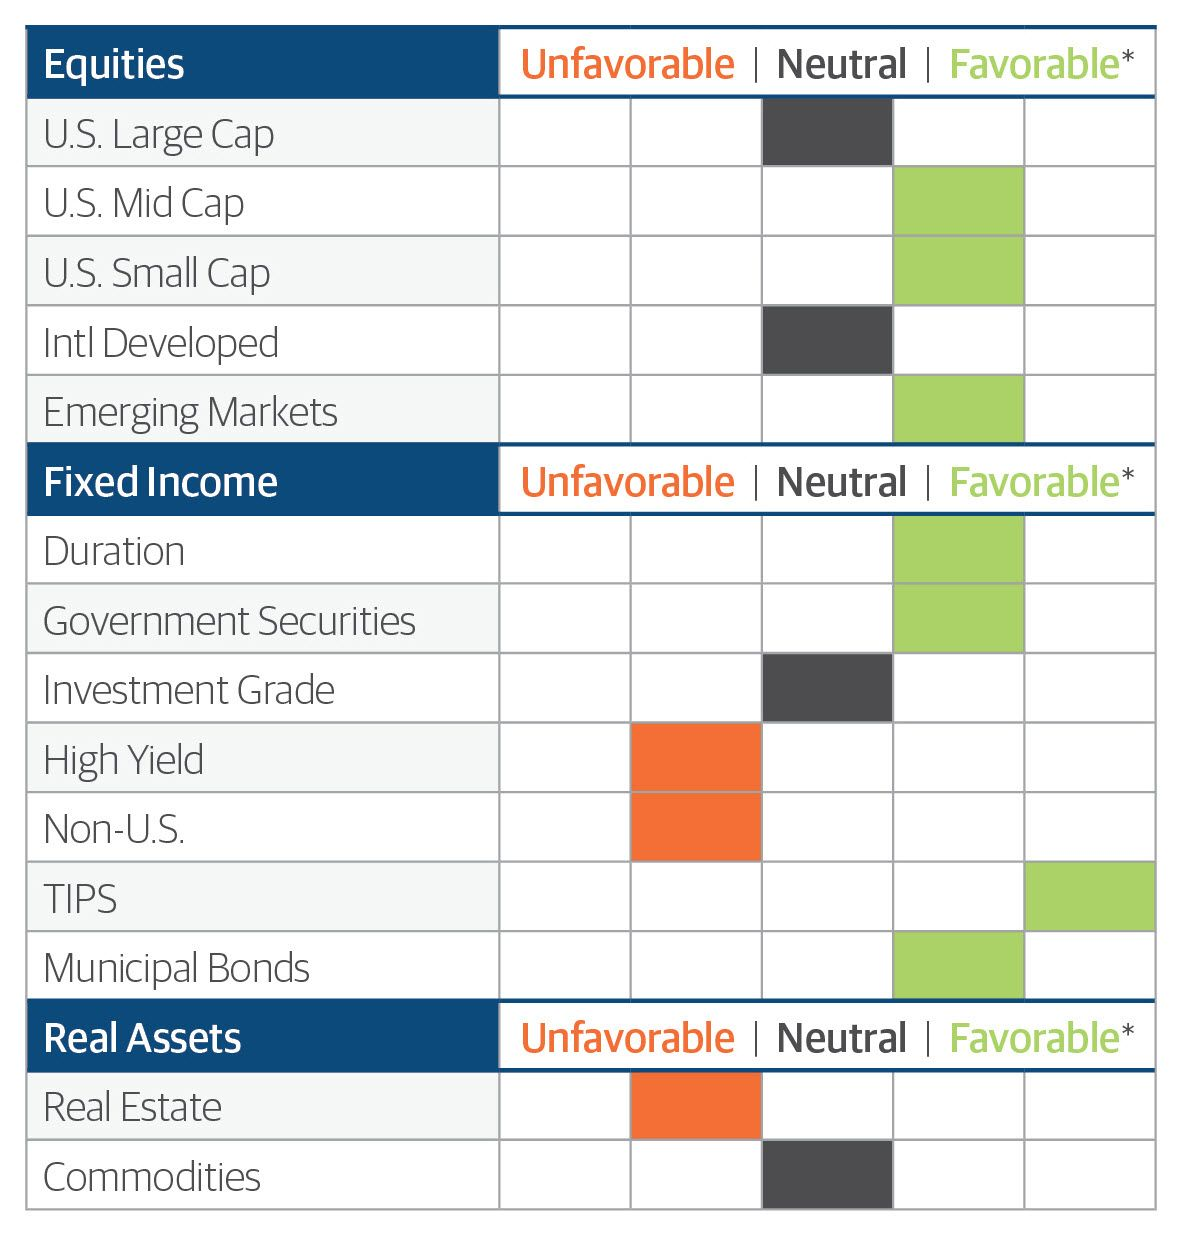 Northwestern Mutual Asset Allocation Focus March 2021 asset favorability chart